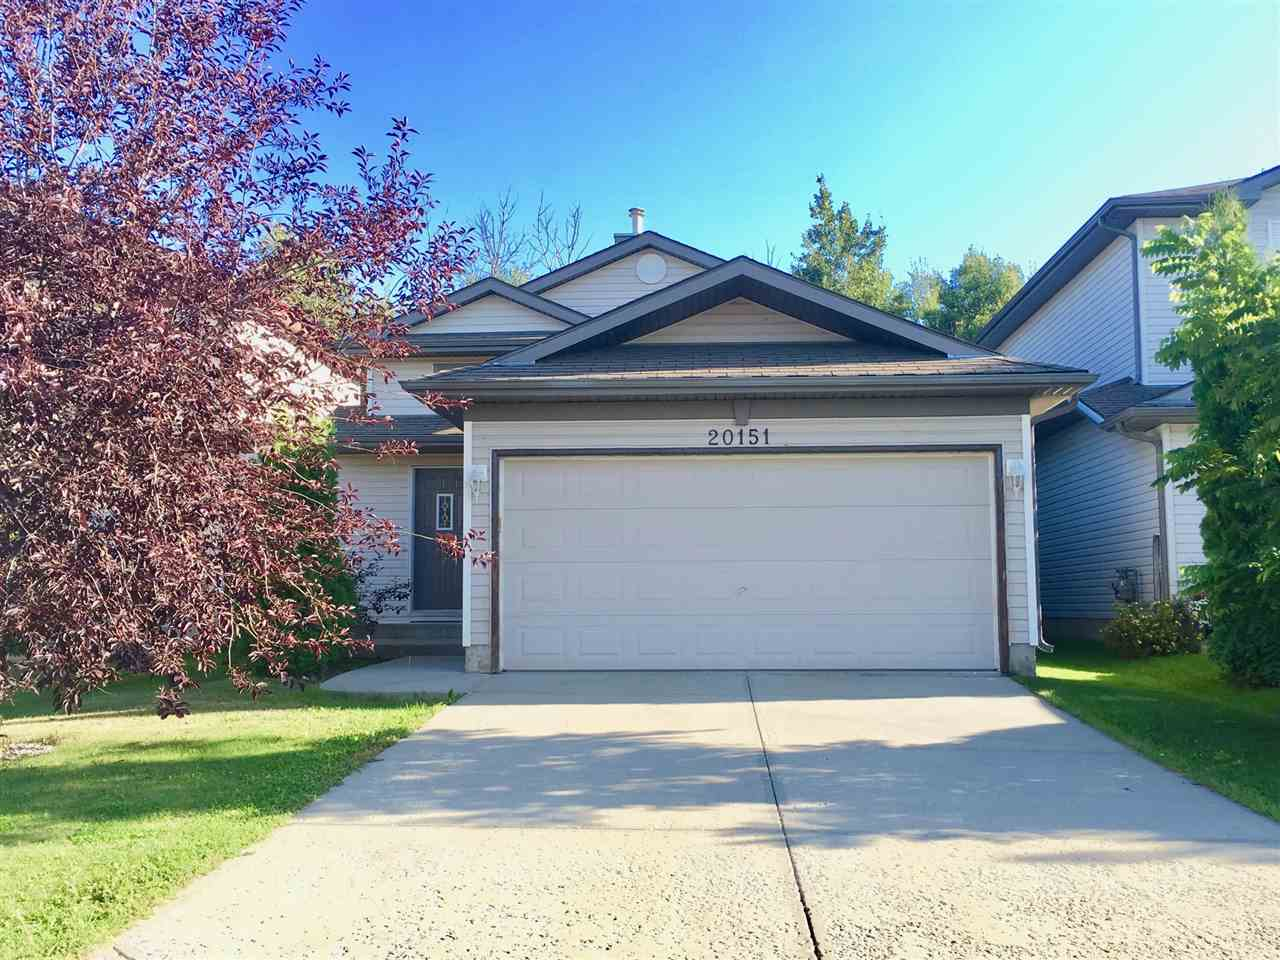 Main Photo: 20151 46 Avenue NW in Edmonton: Zone 58 House for sale : MLS® # E4092212